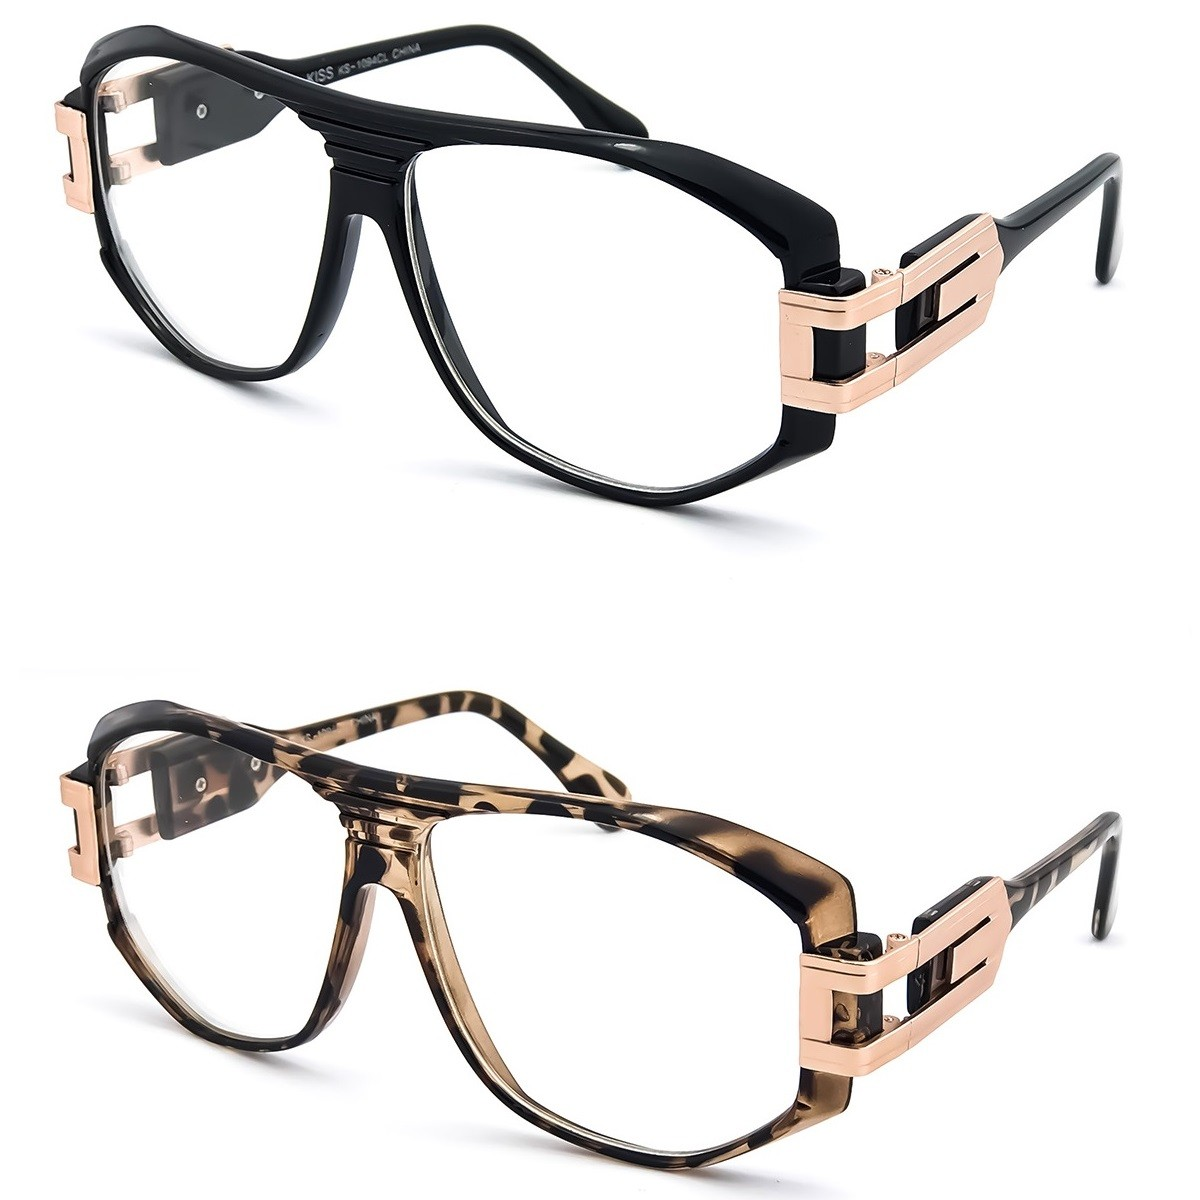 Glasses neutral KISS® - OLD SCHOOL mod. SPECIAL - optical frame HIP-HOP man woman VINTAGE